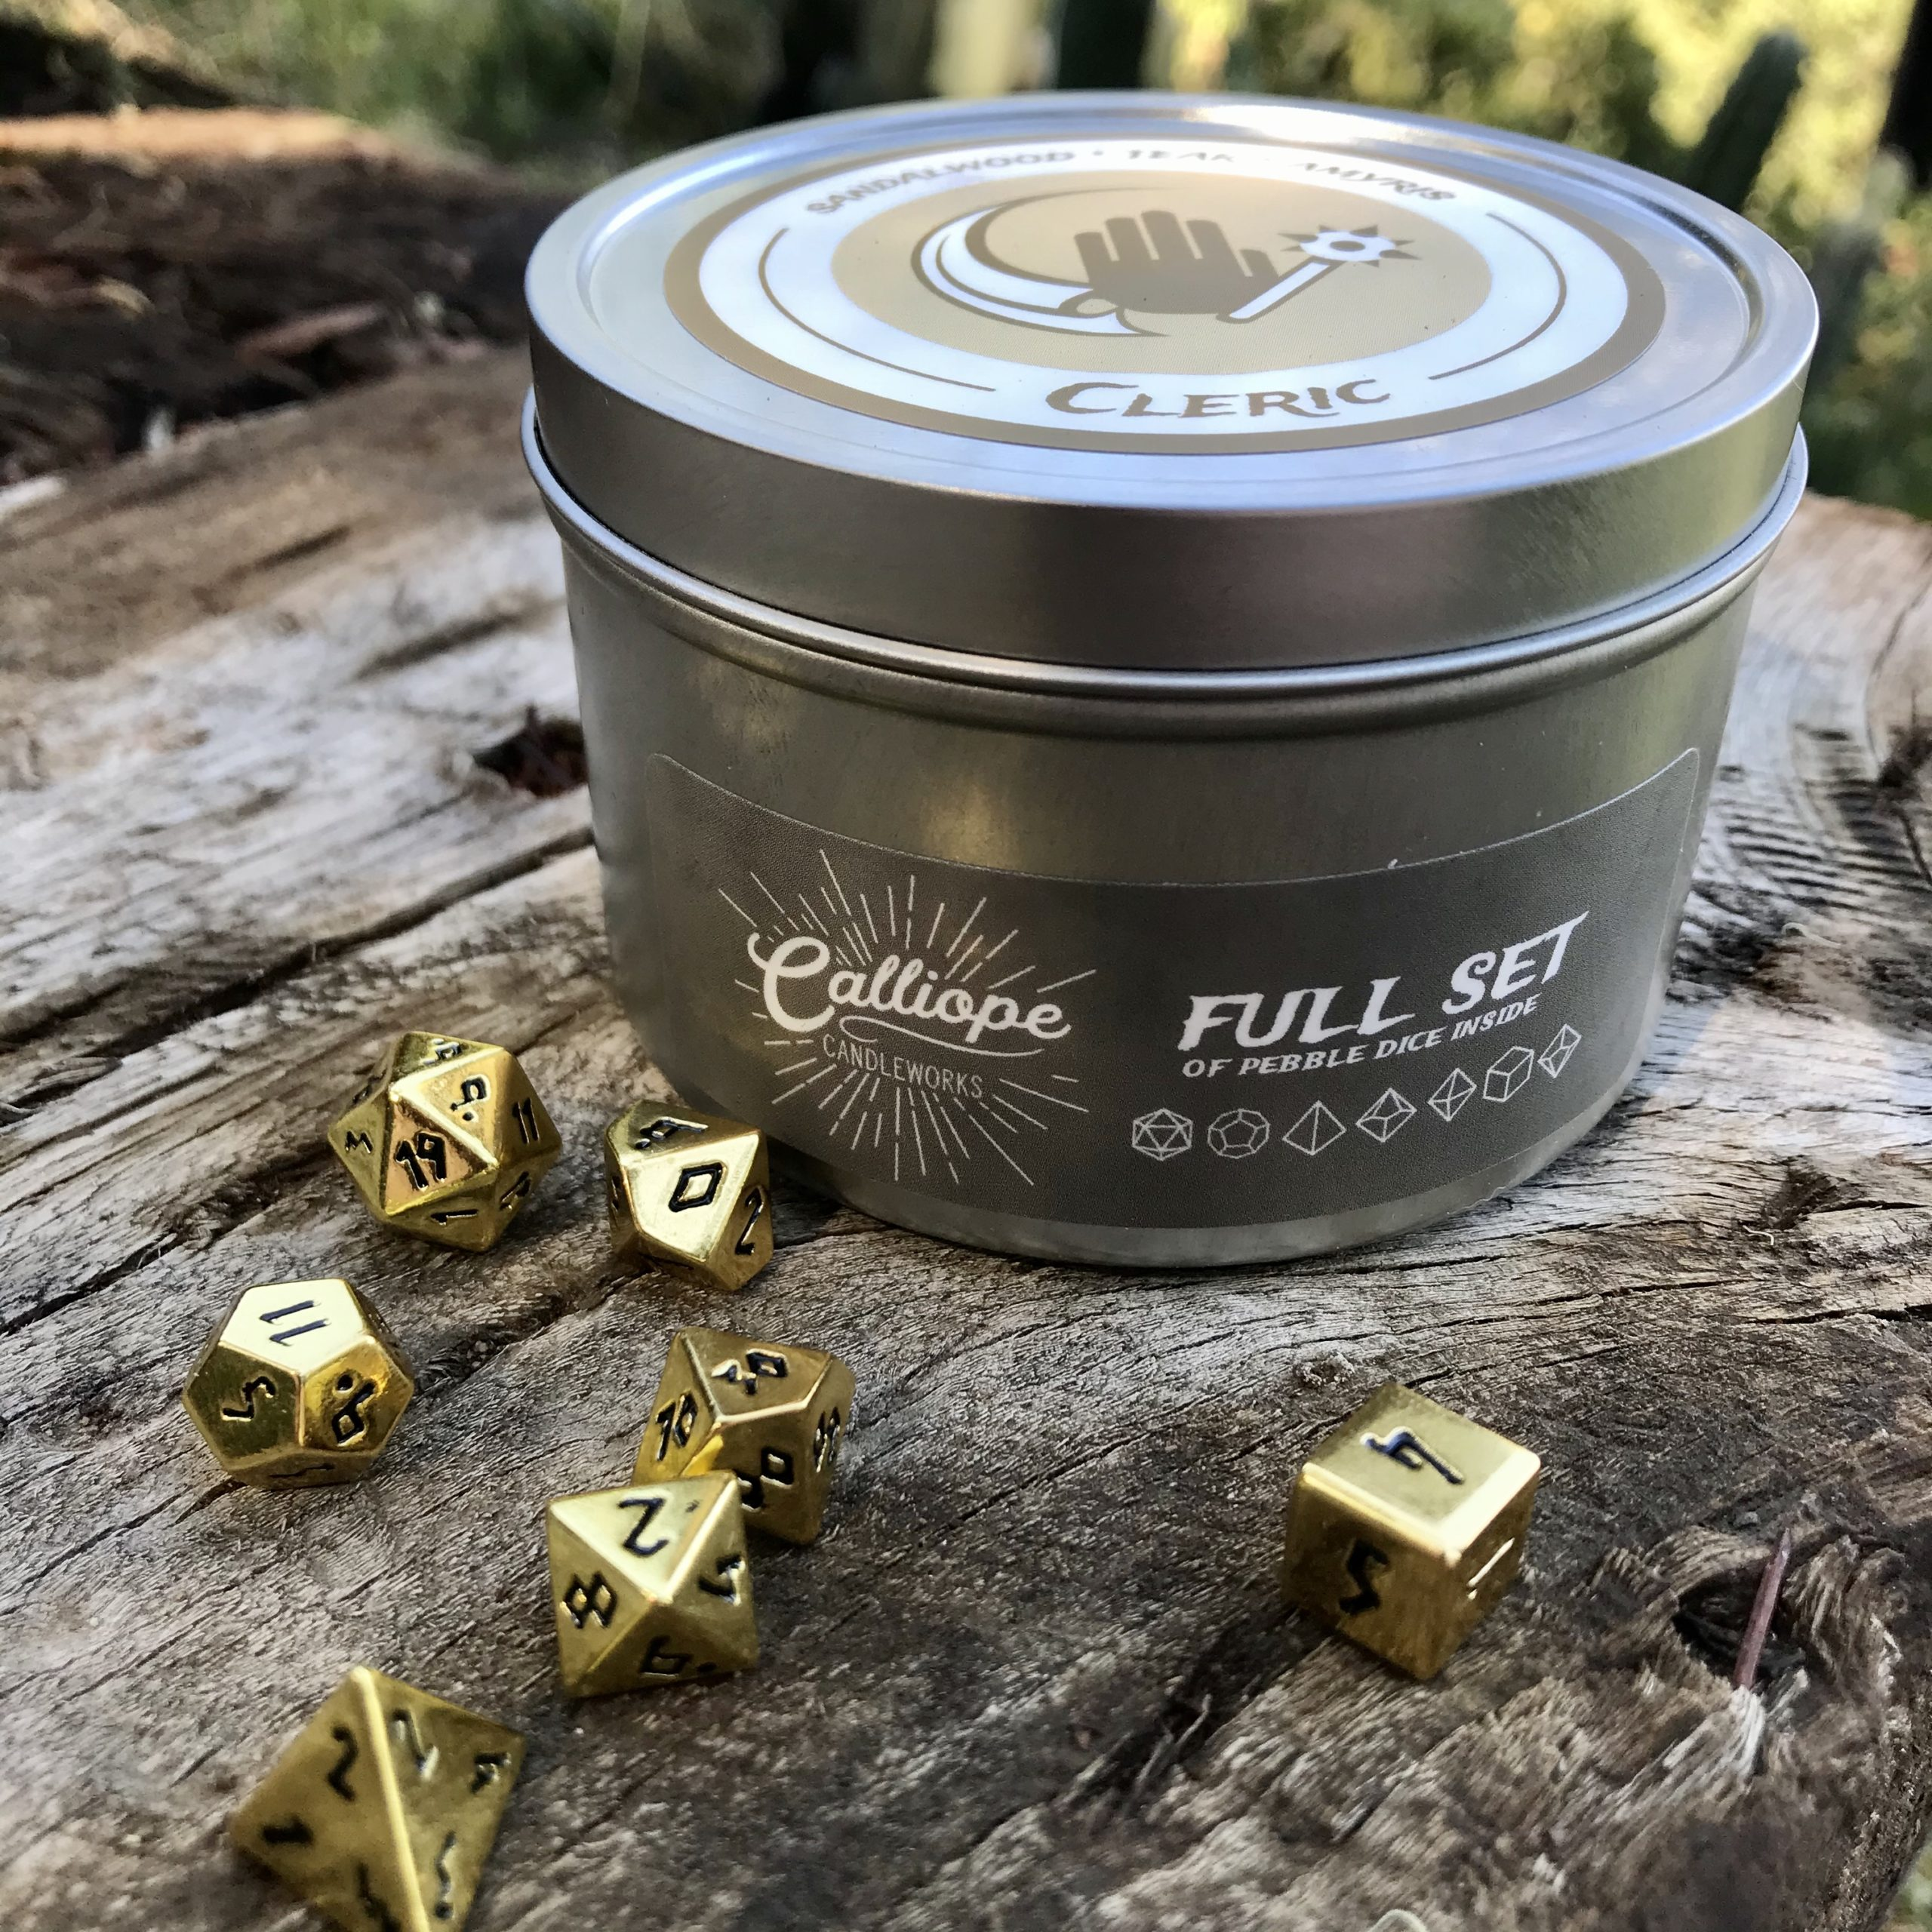 Cleric Champions Of The Pyre Candles With Embedded Metal Dice Calliope Candleworks Norse foundry offers dice for roleplaying games such as dungeons and dragons, pathfinder, shadowrun and other tabletop games. cleric champions of the pyre candles with embedded metal dice